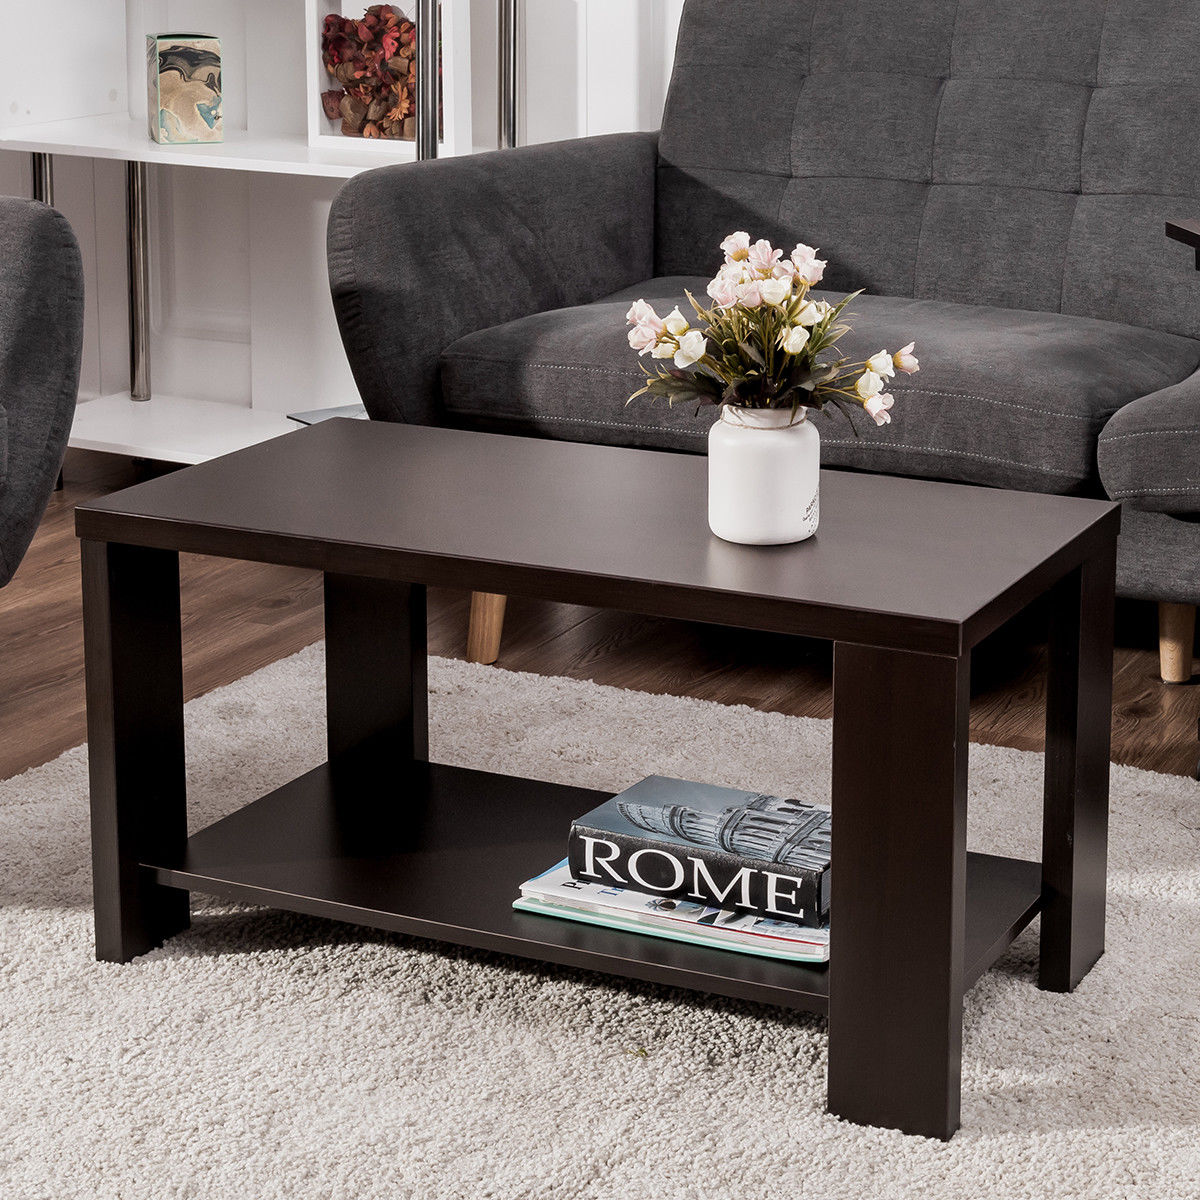 Costway Coffee Table Rectangular Cocktail Table Living Room Furniture w  Storage Shelf by Costway